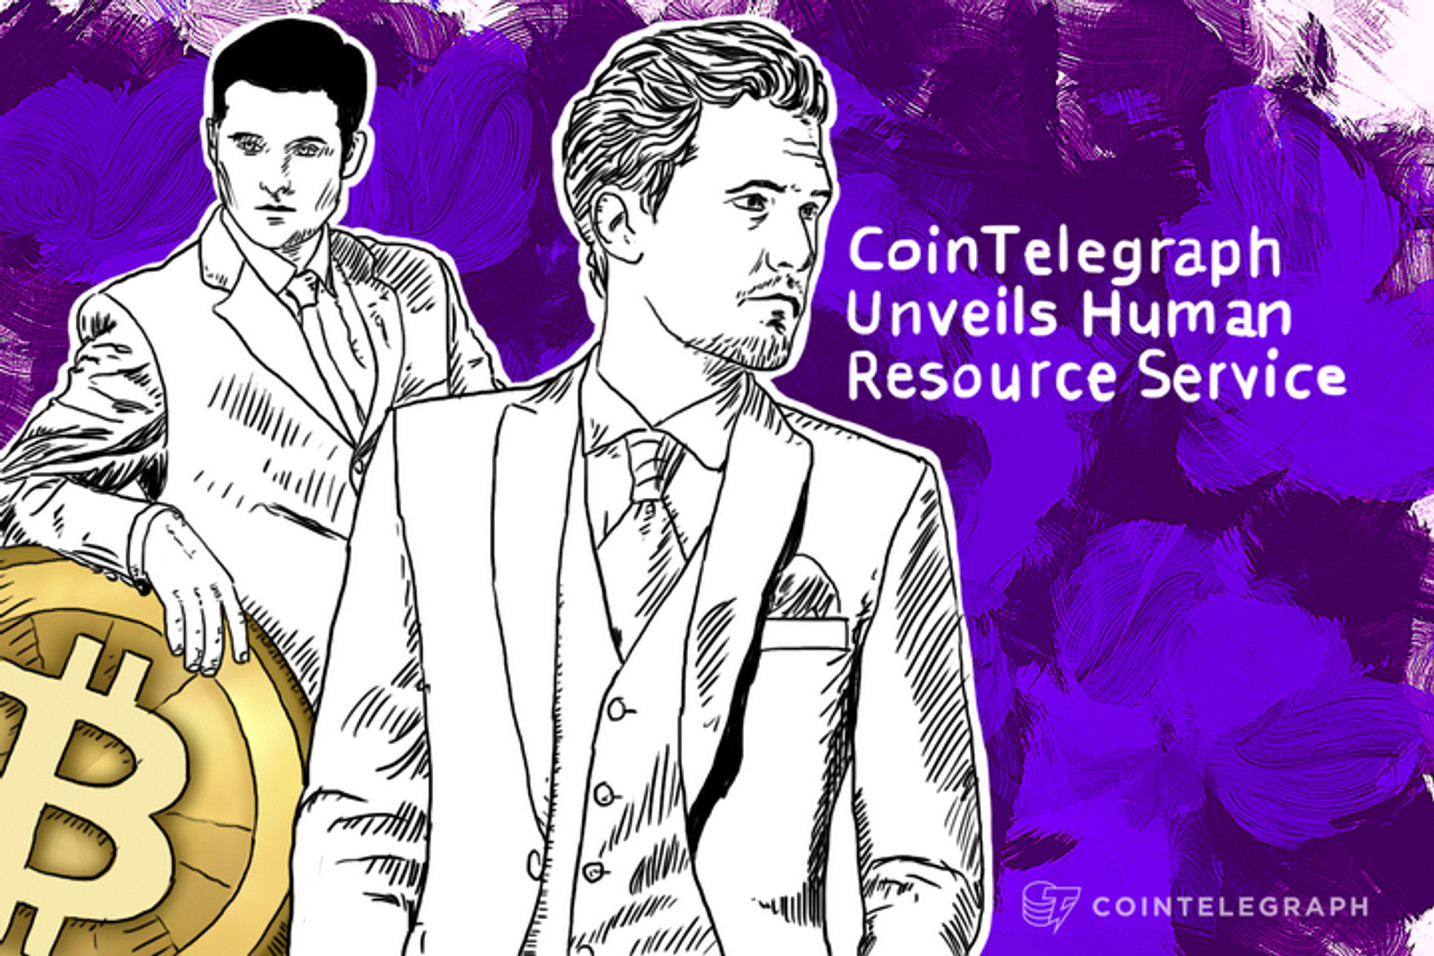 Cointelegraph Unveils Human Resource Service